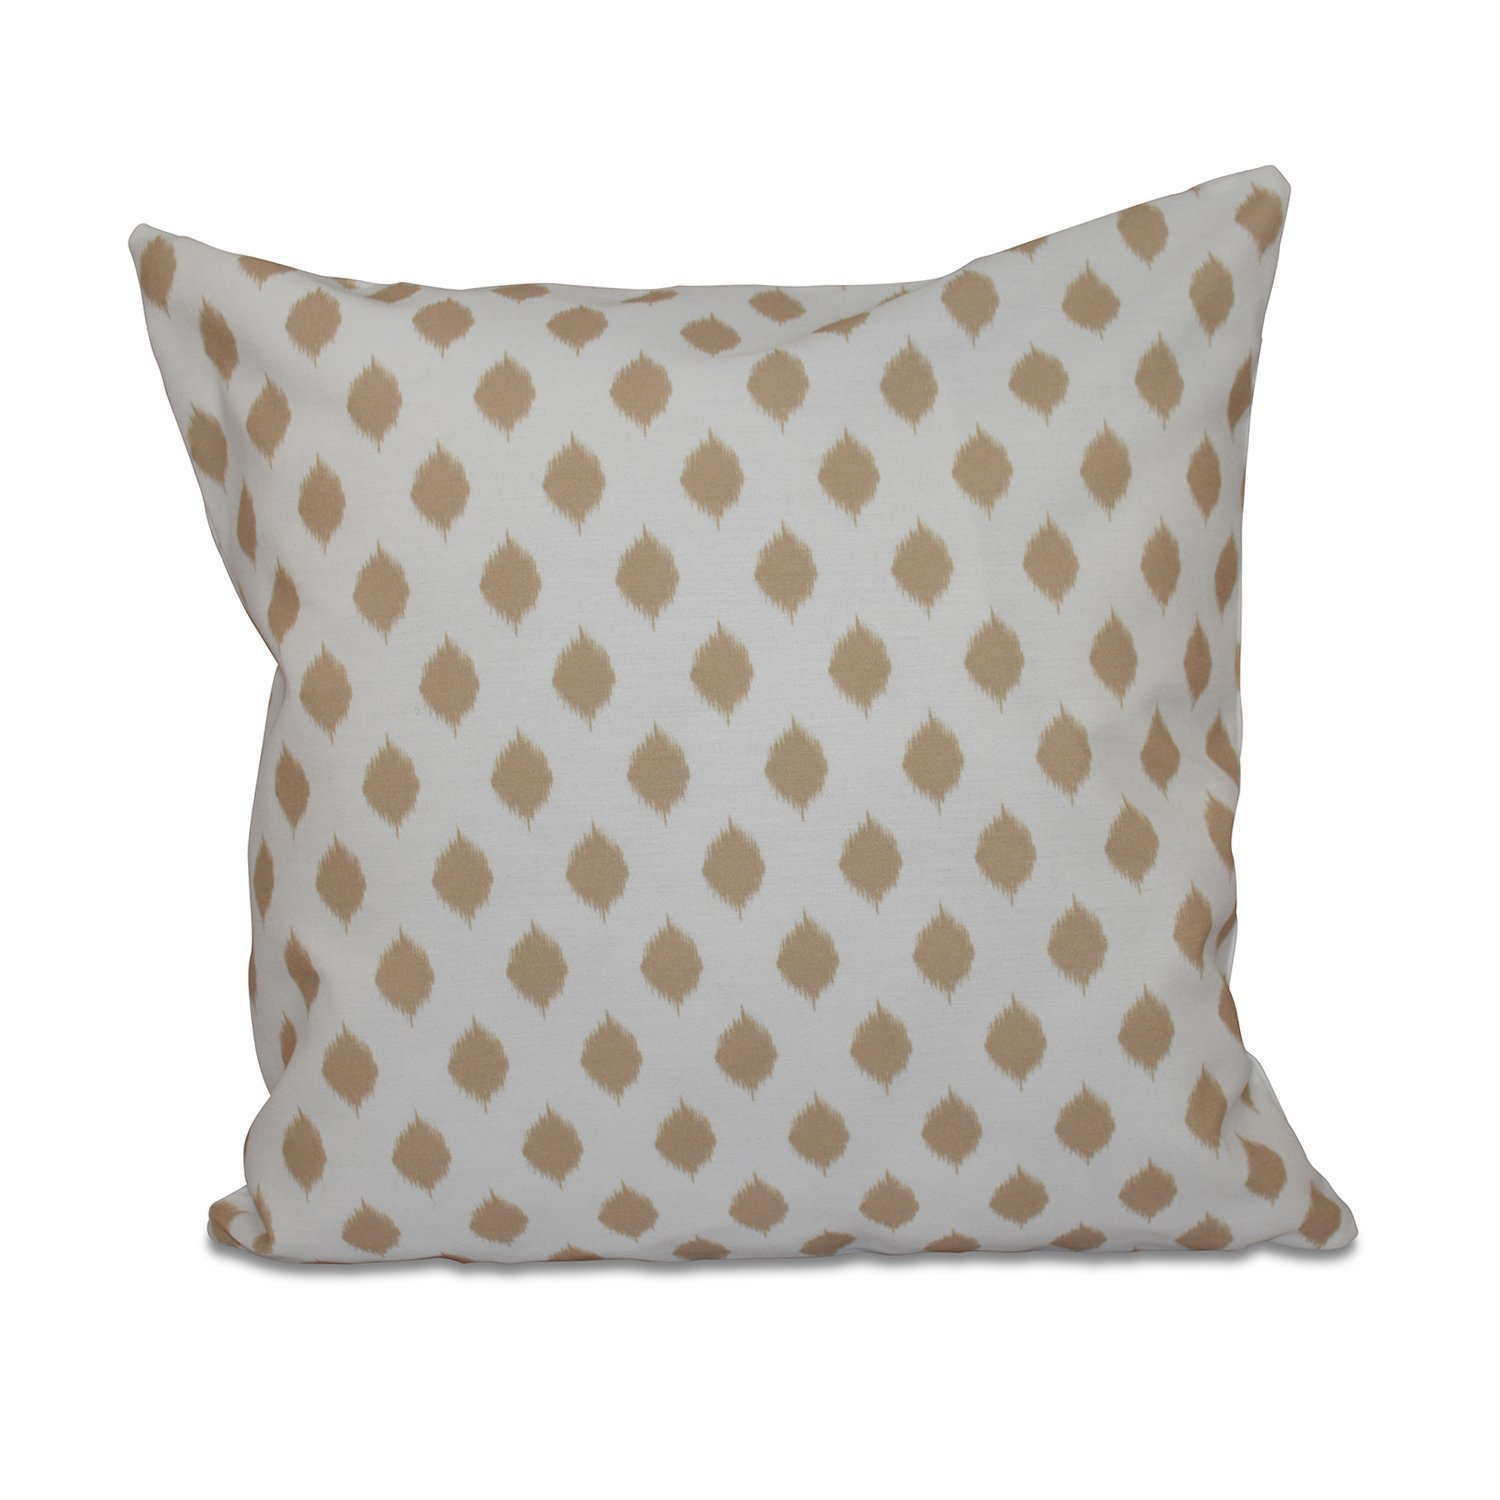 E by design Cop-Ikat Geometric Print Pillow 18-Inch Length Spring Navy